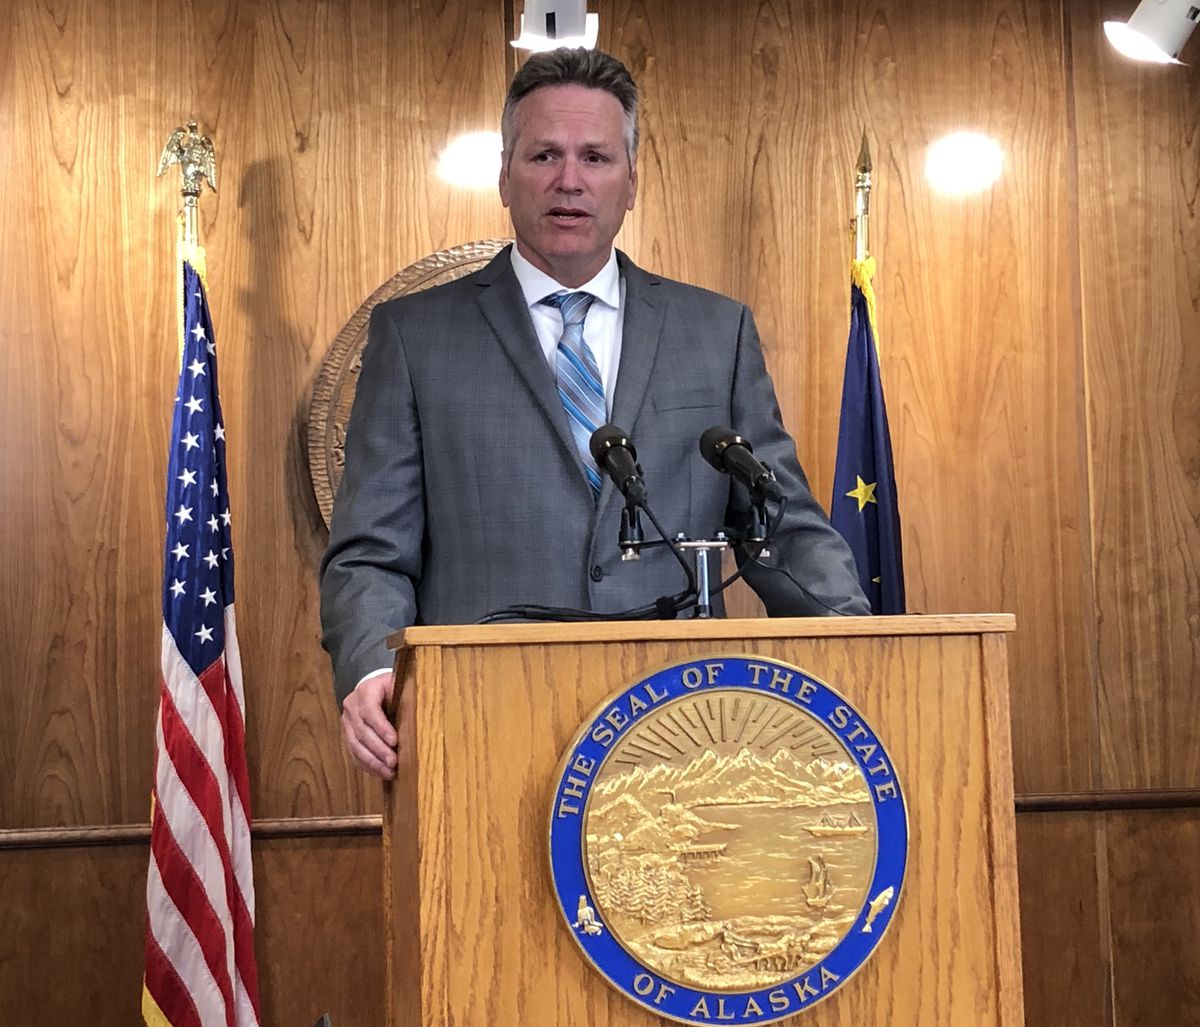 Alaska Gov. Mike Dunleavy reveals his budget vetoes during a press conference Friday, June 28, 2019 at the Alaska State Capitol in Juneau. (James Brooks / ADN)